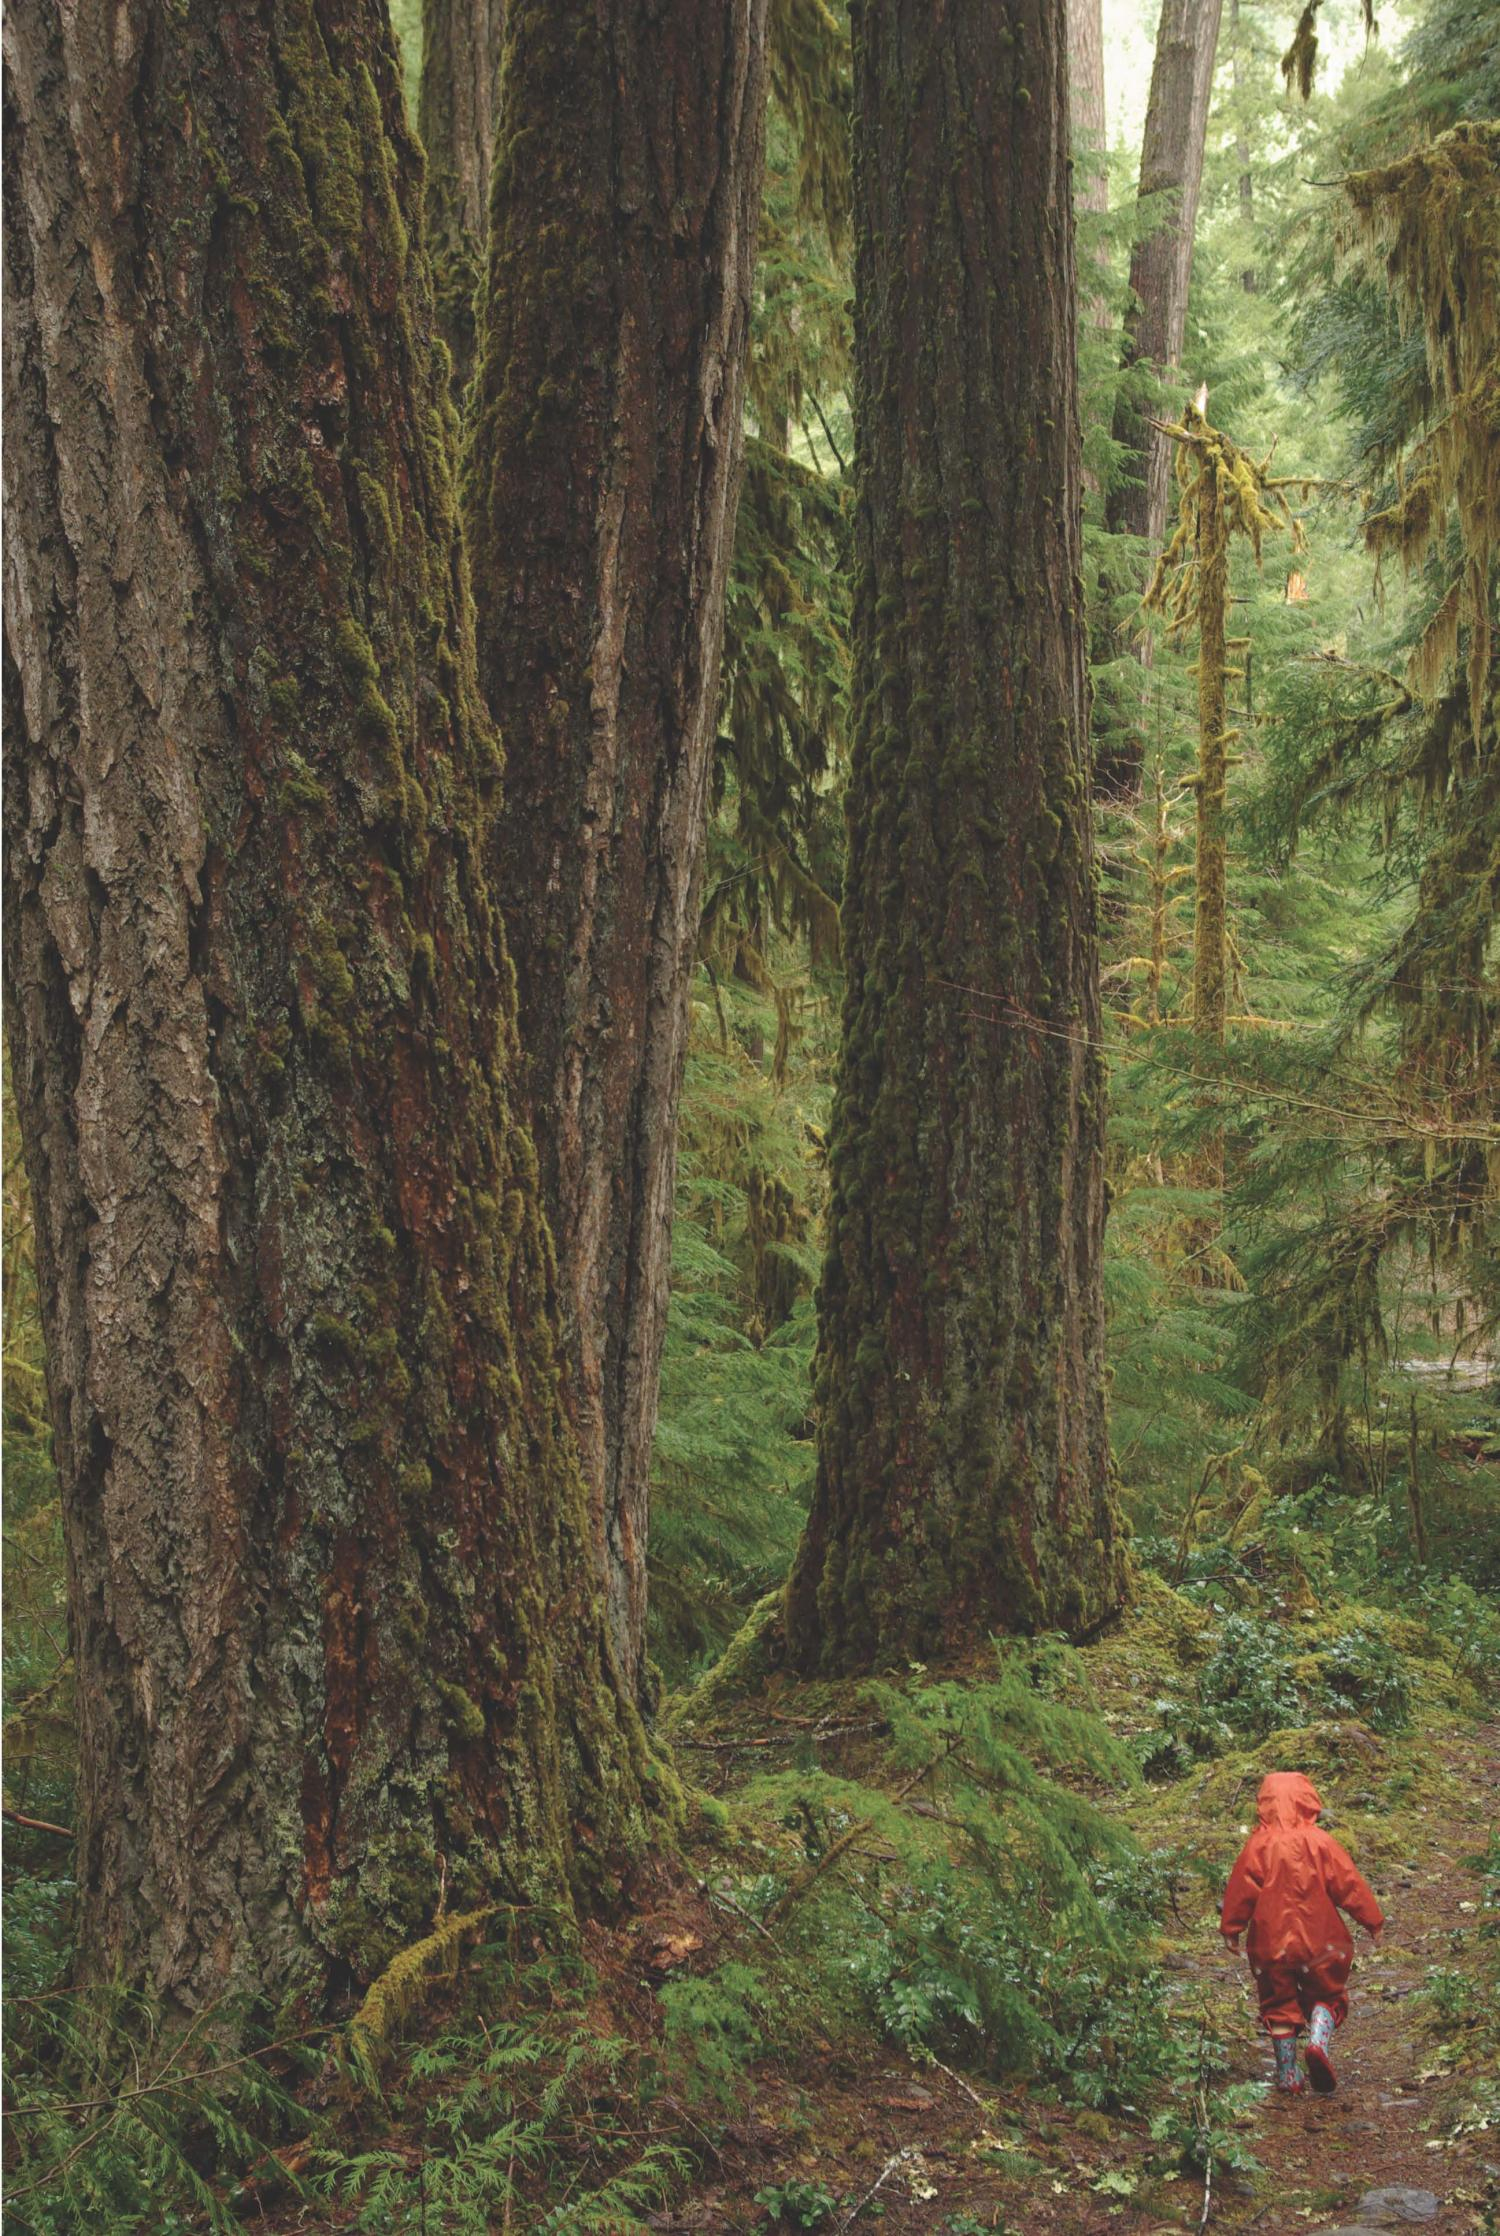 These Old Growth Forests In The Cascades May Exceed 500 Years Credit Matt Betts